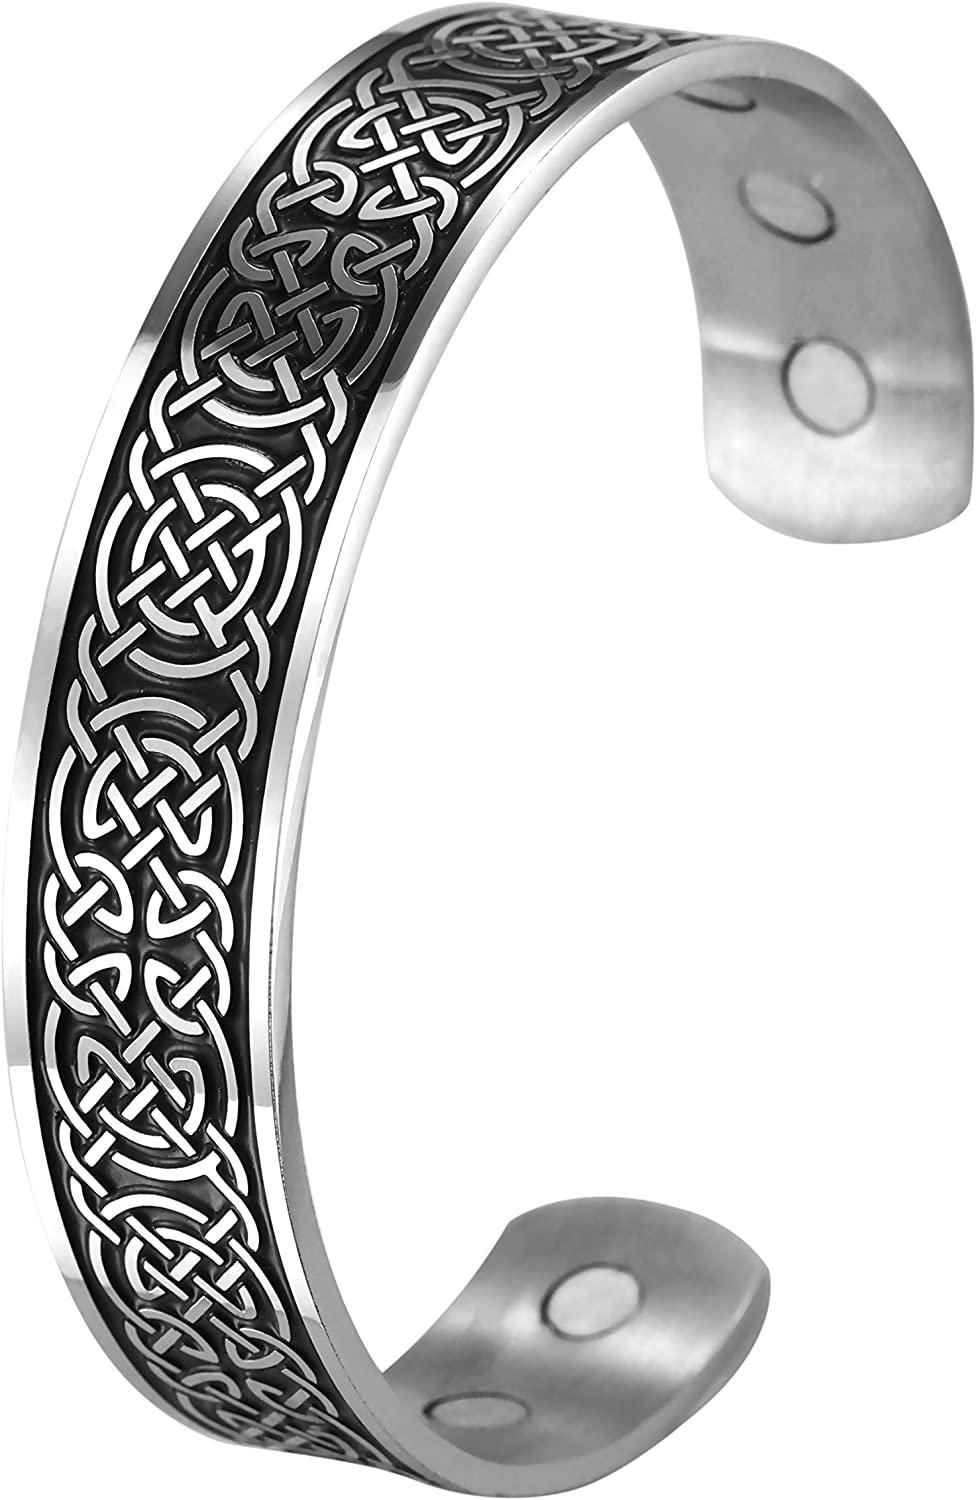 TEAMER Magnetic Therapy Bracelet Health Care Viking Norse Doire Celtic Knot Stainless Steel Cuff Bangle for Men